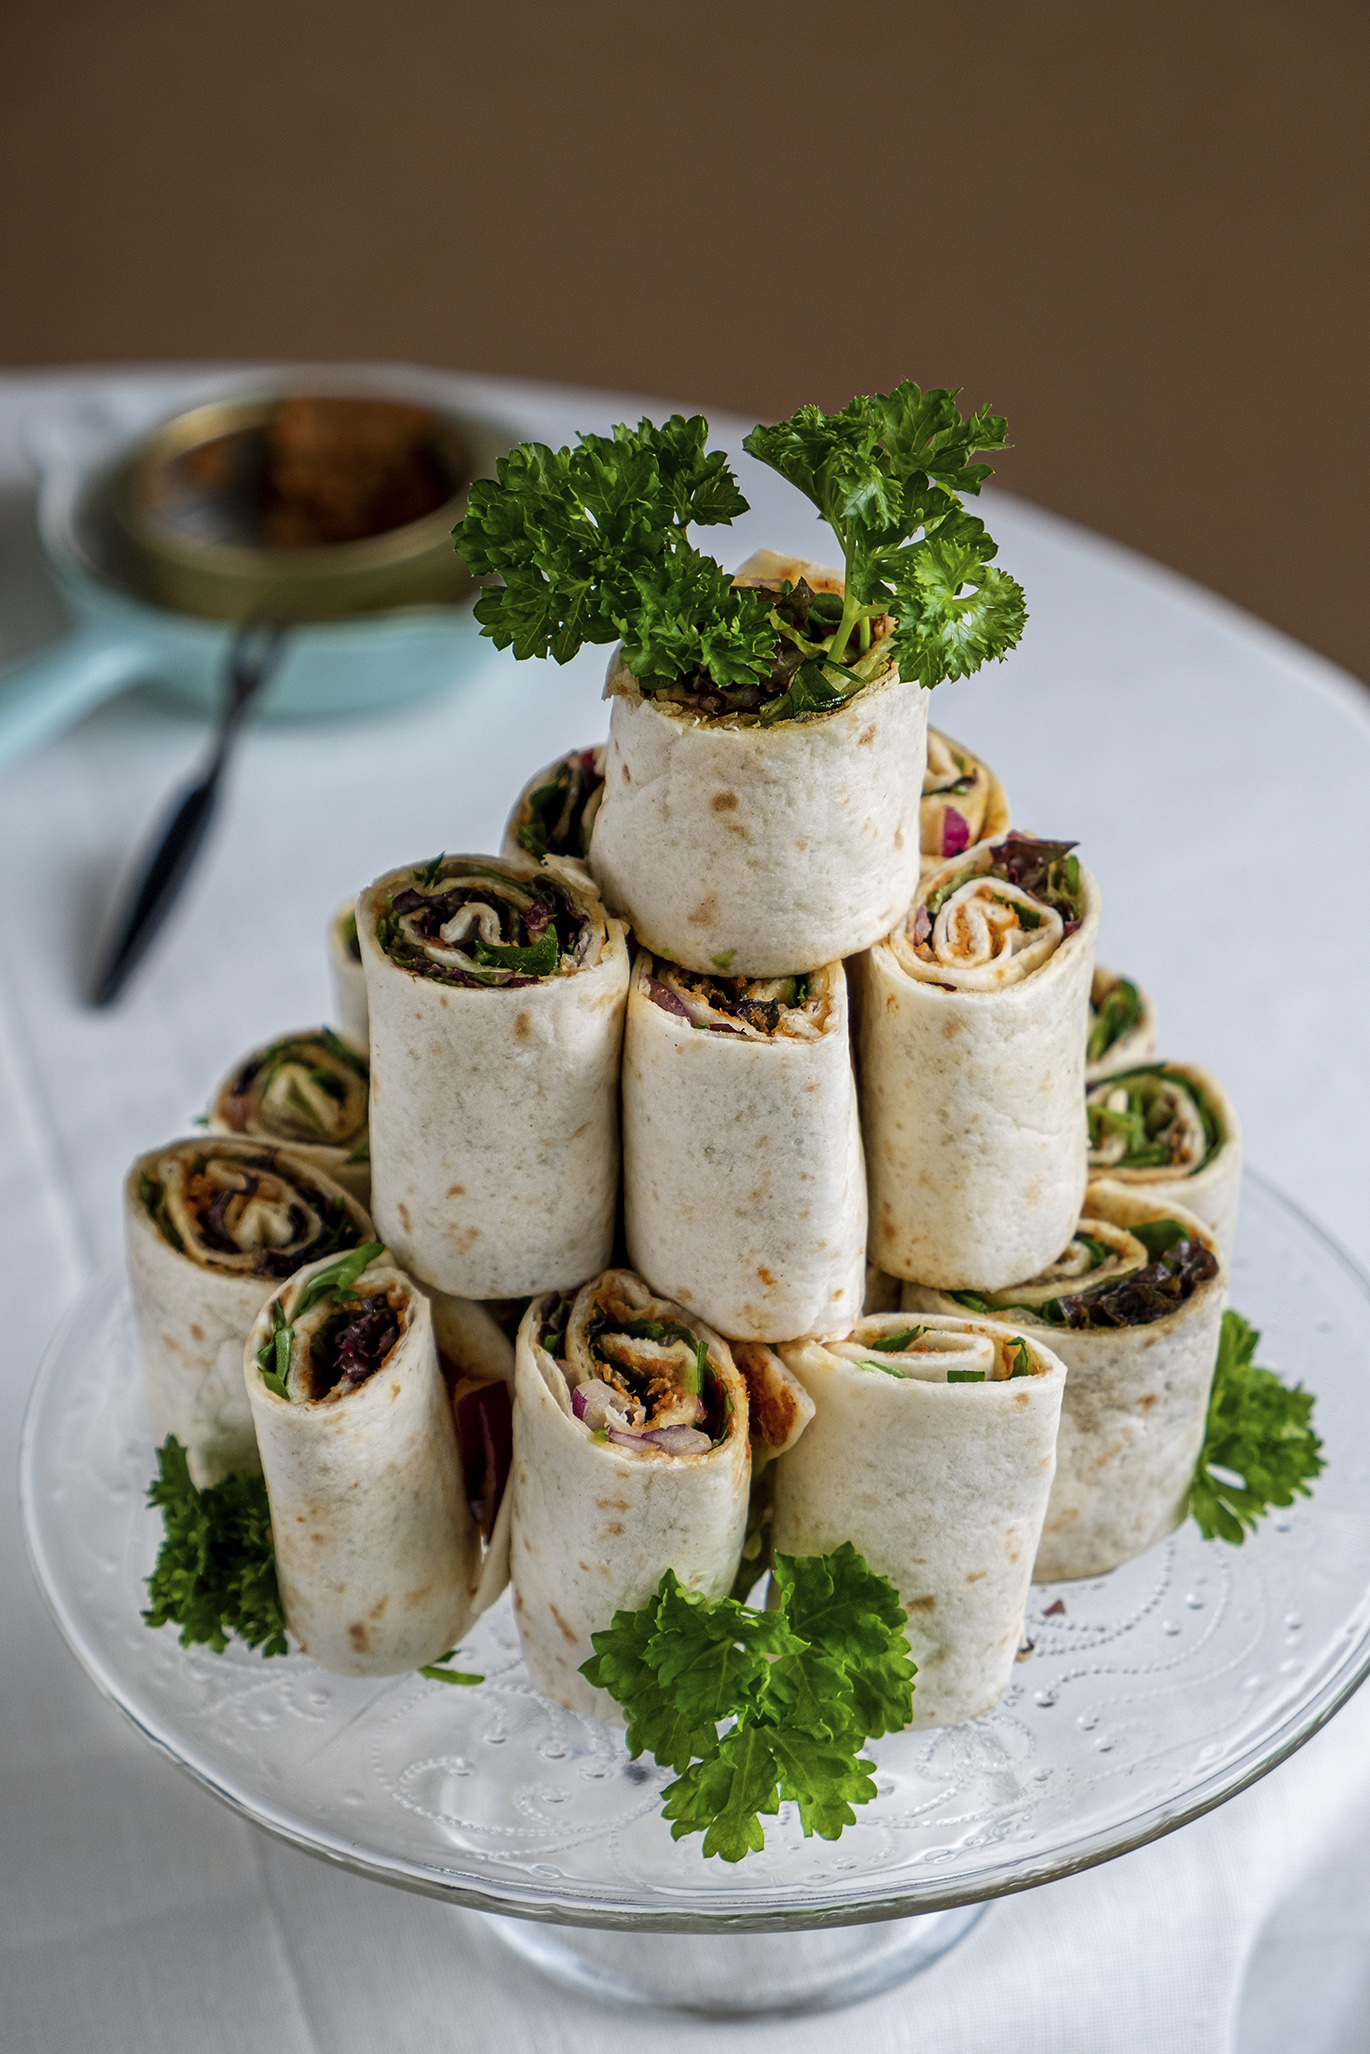 Tortilla wraps met paté sardinha of Tuna